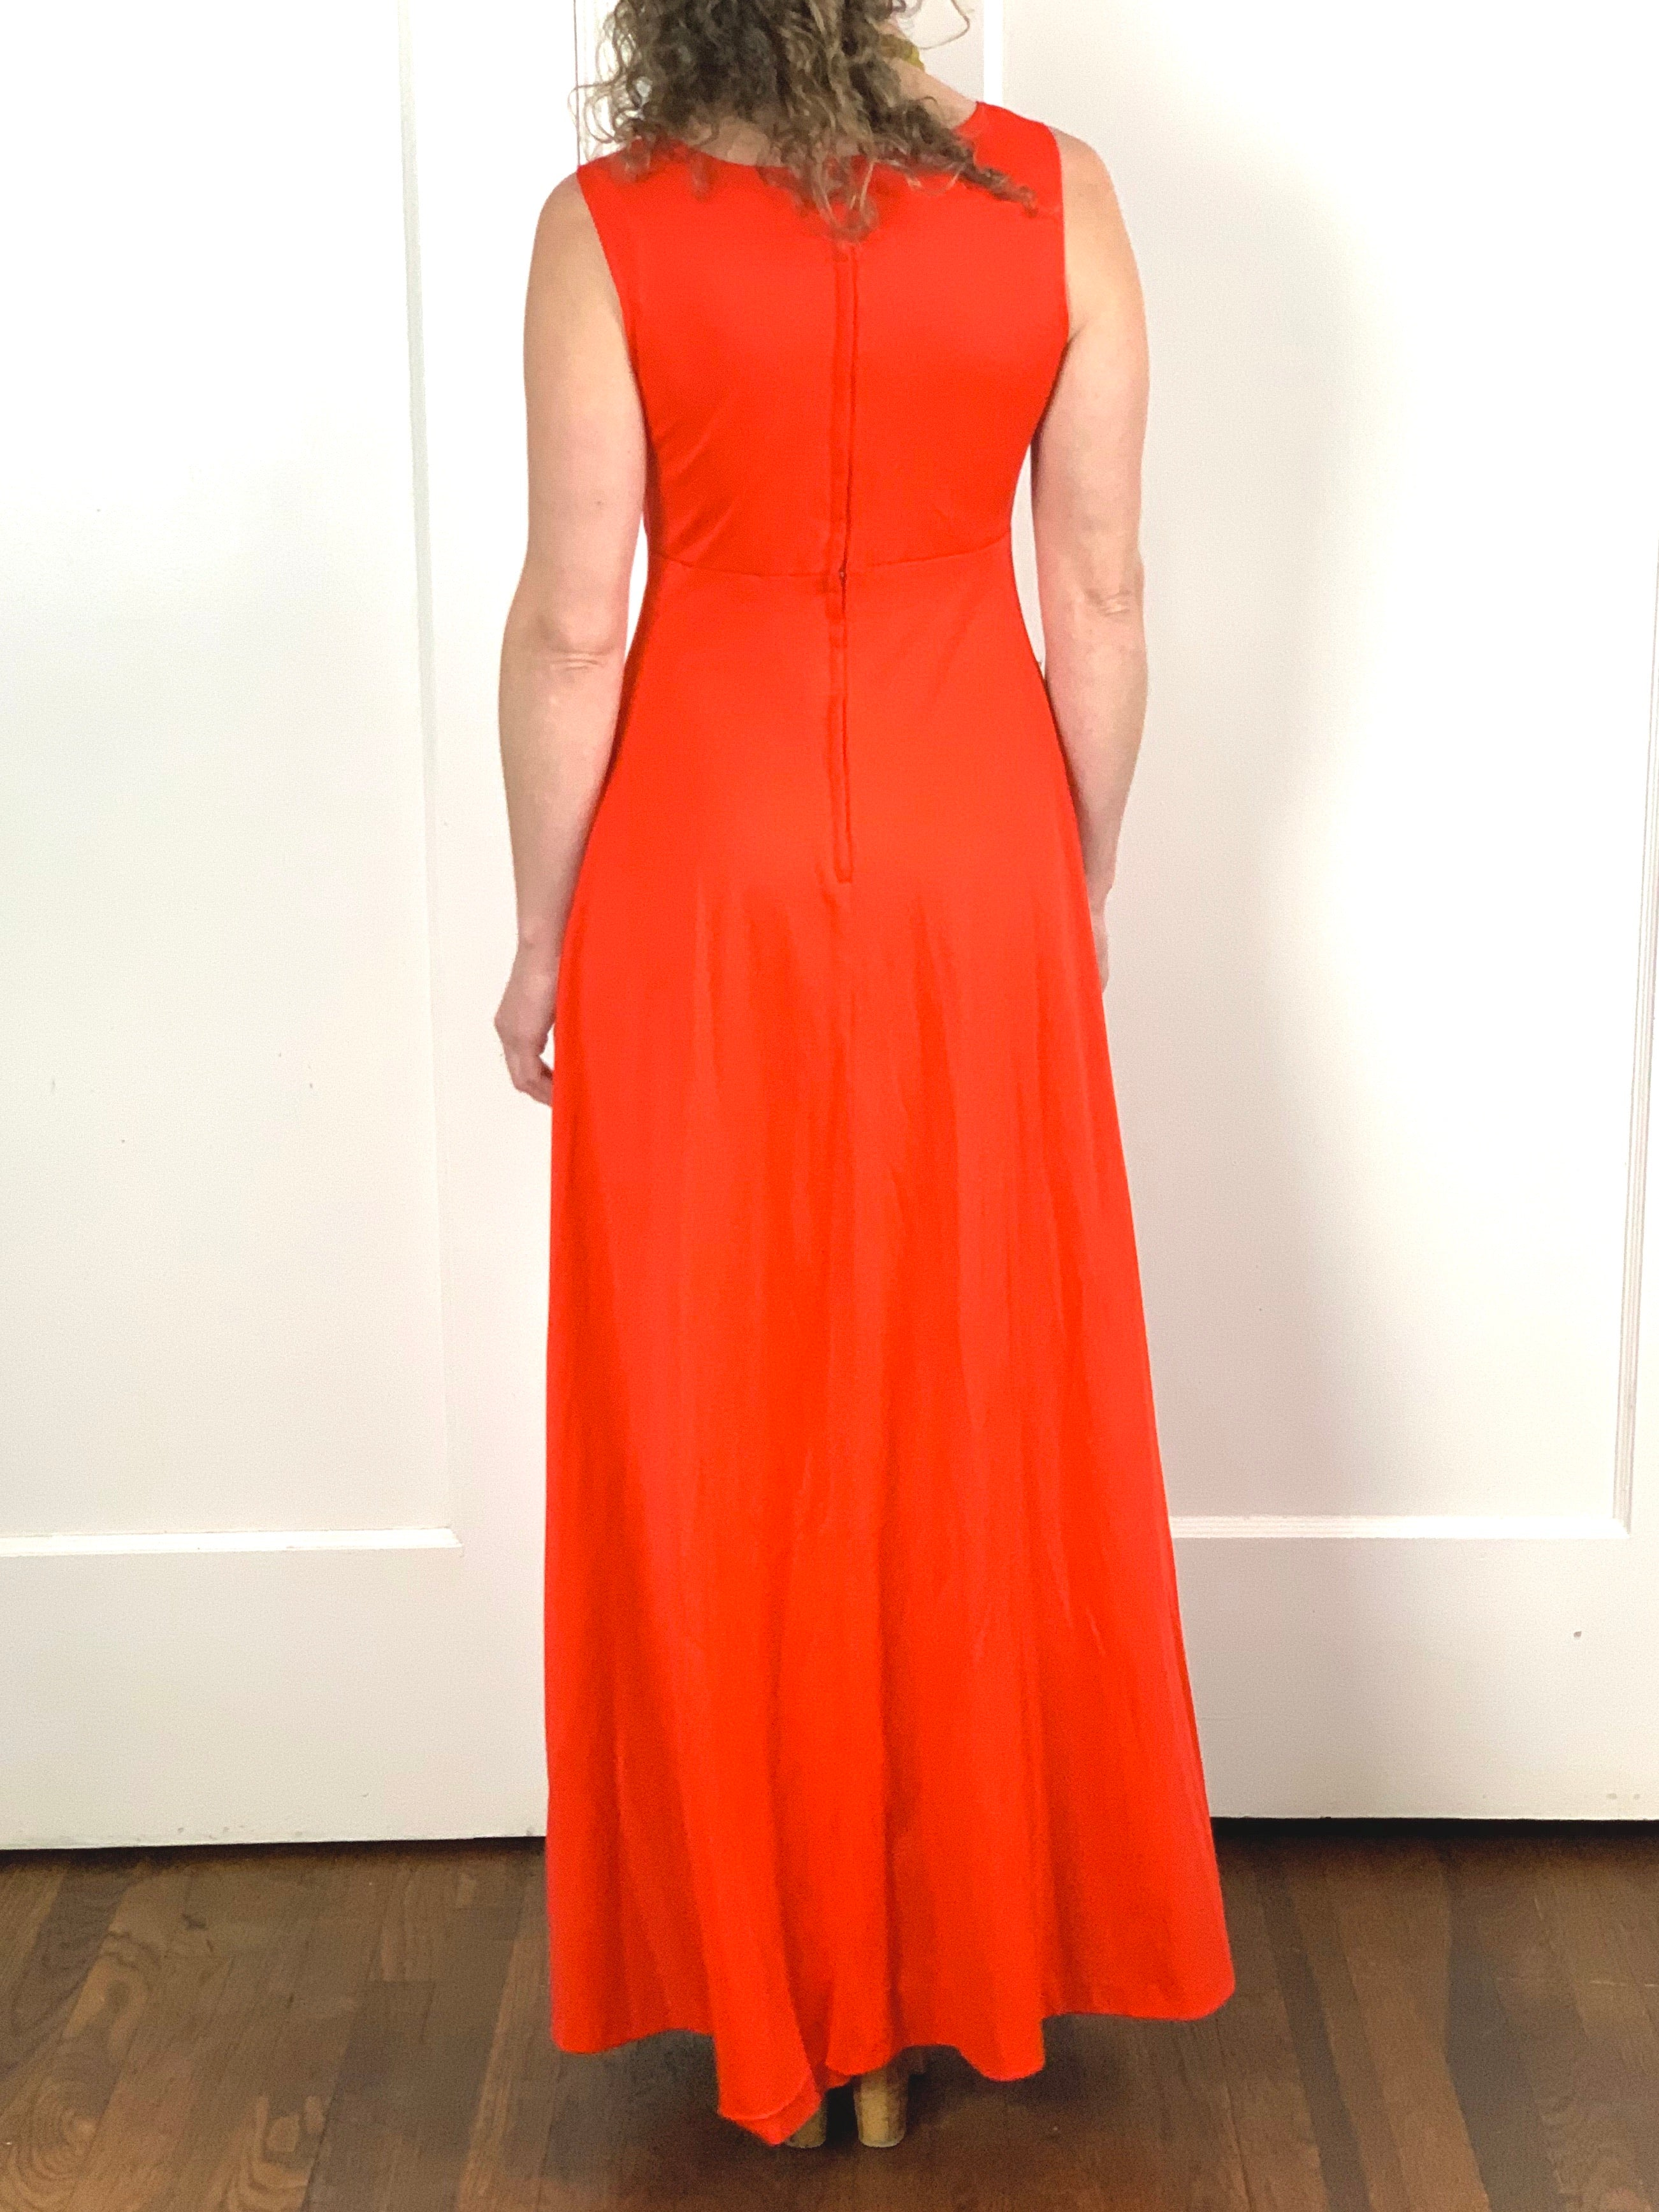 Coral Red Maxi Dress - S/M